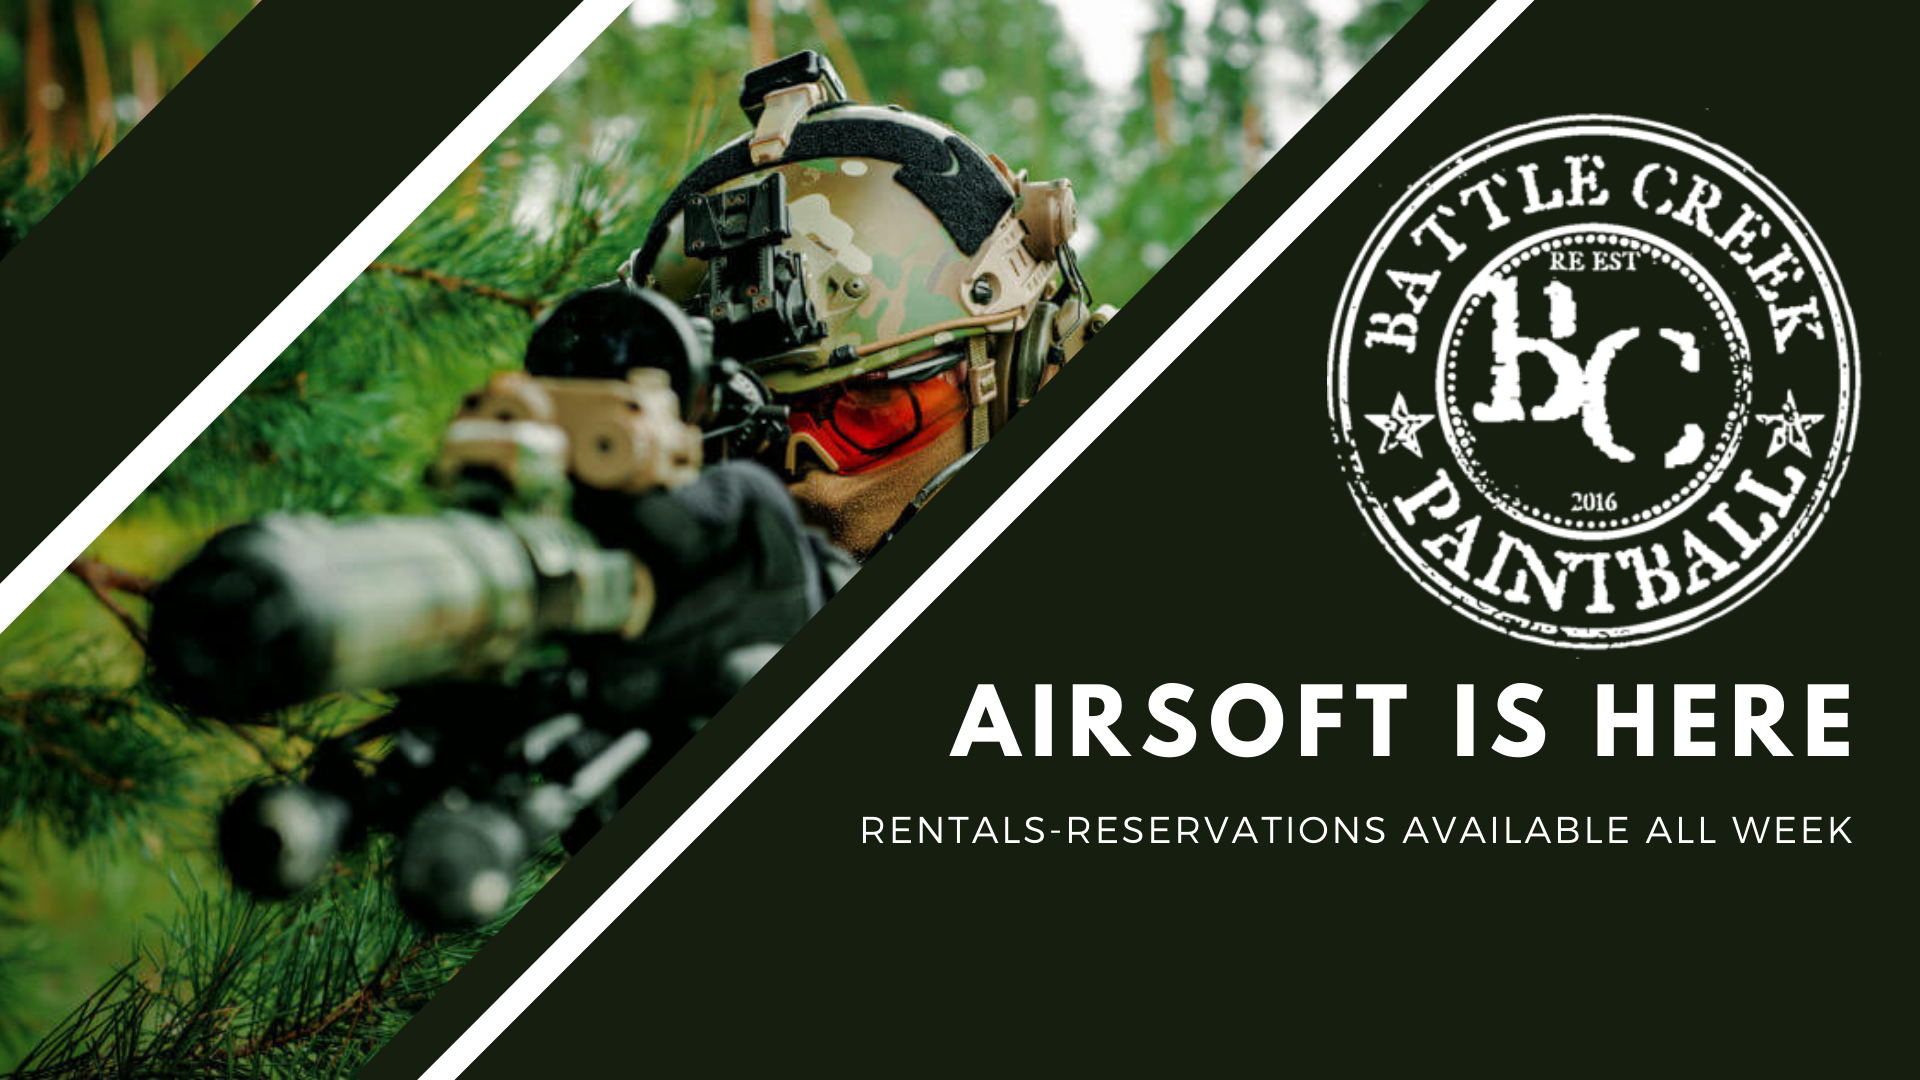 //battlecreekpaintball.net/wp-content/uploads/2020/09/Airsoft-is-here.png